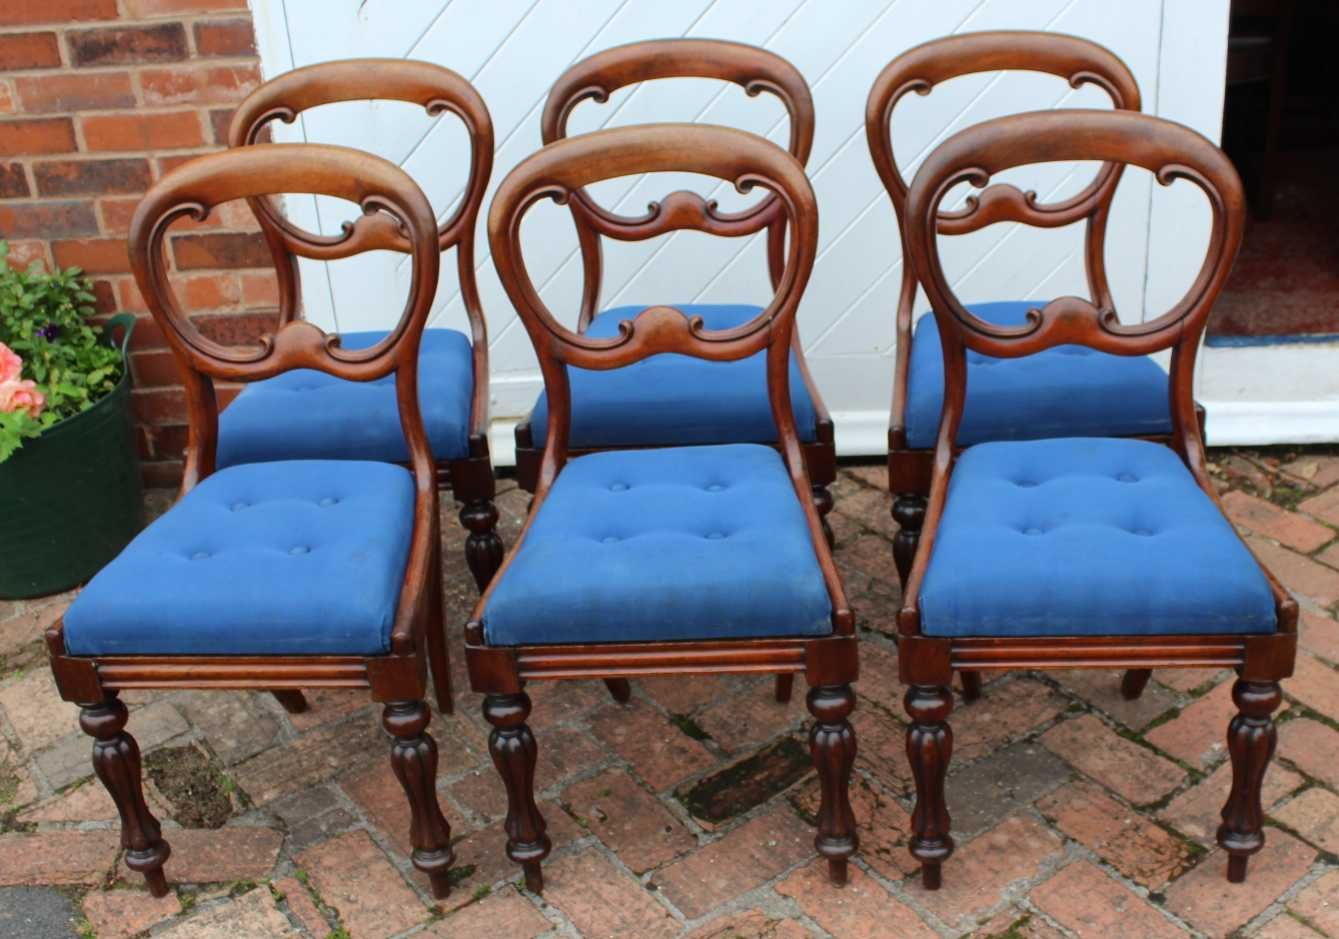 Antique Mahogany Balloon Back Dining Chairs, Set of 6 - Antique Mahogany Balloon Back Dining Chairs, Set Of 6 For Sale At Pamono